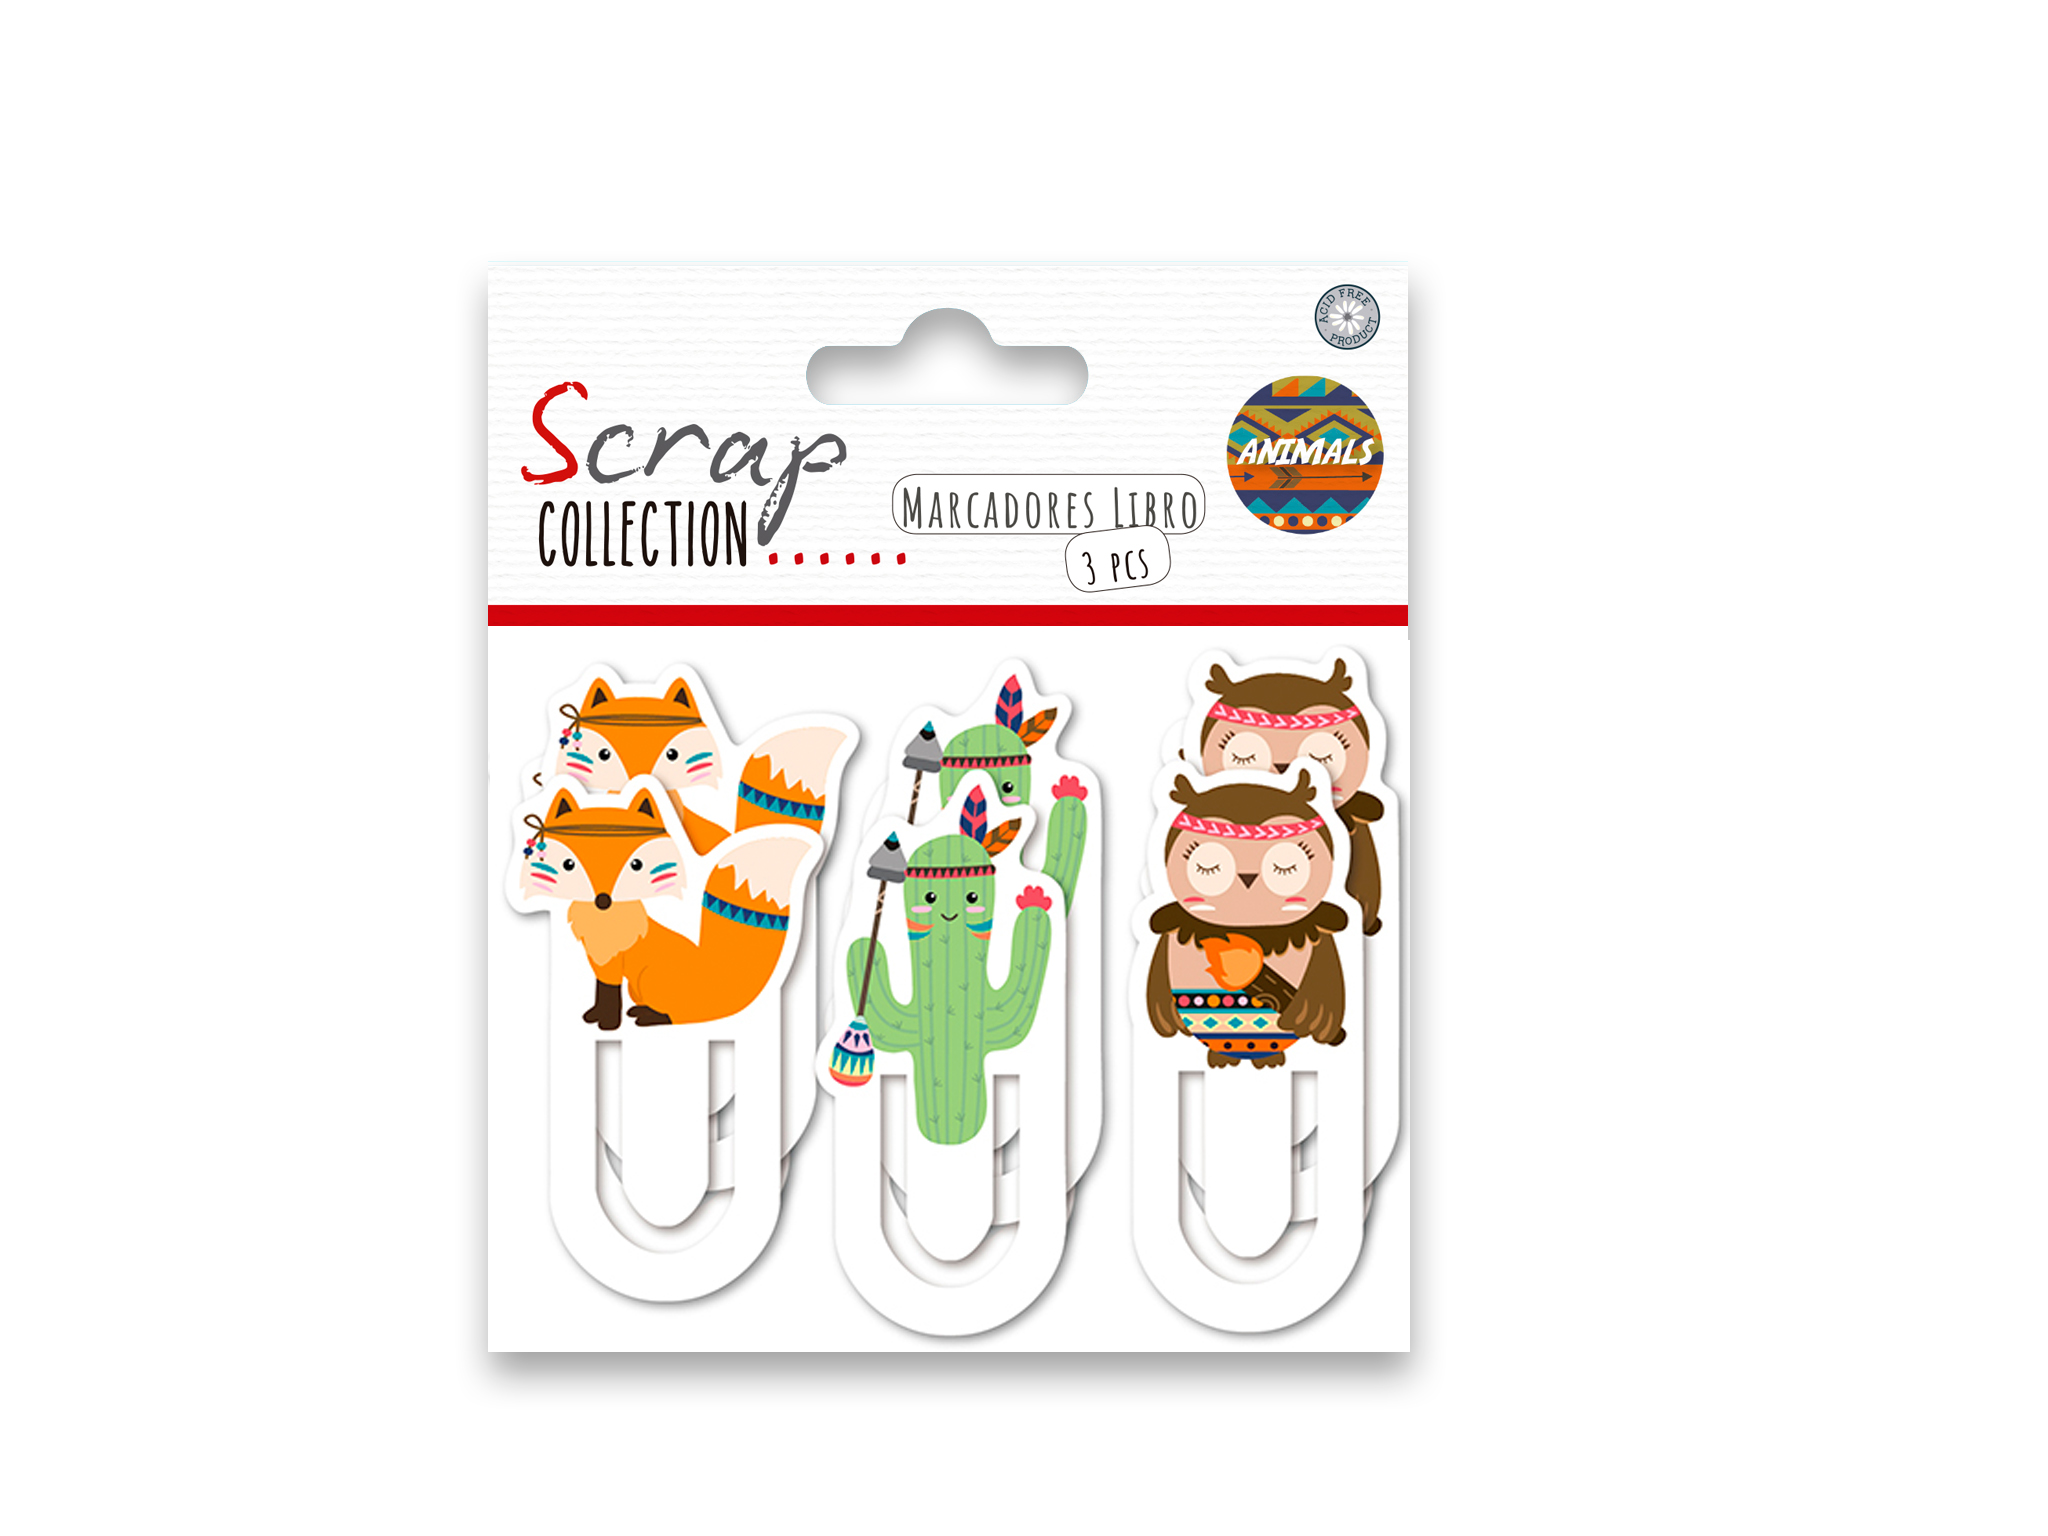 SET 15 MARCADORES LIBRO ANIMALS cod. 2501864